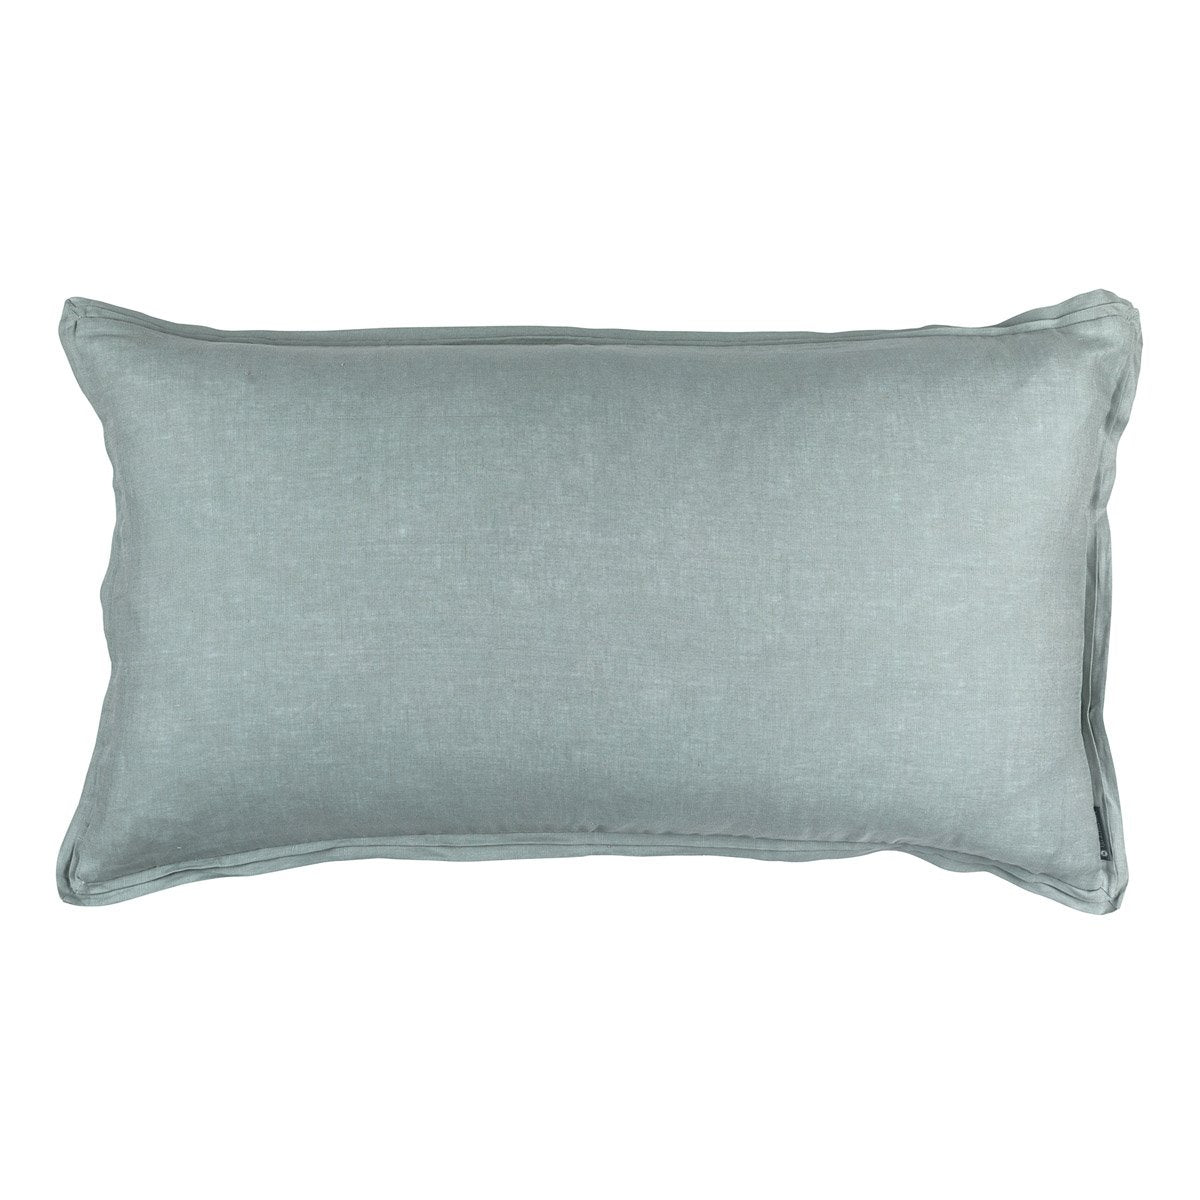 Fig Linens - Lili Alessandra Bedding - Bloom Sky King Pillow